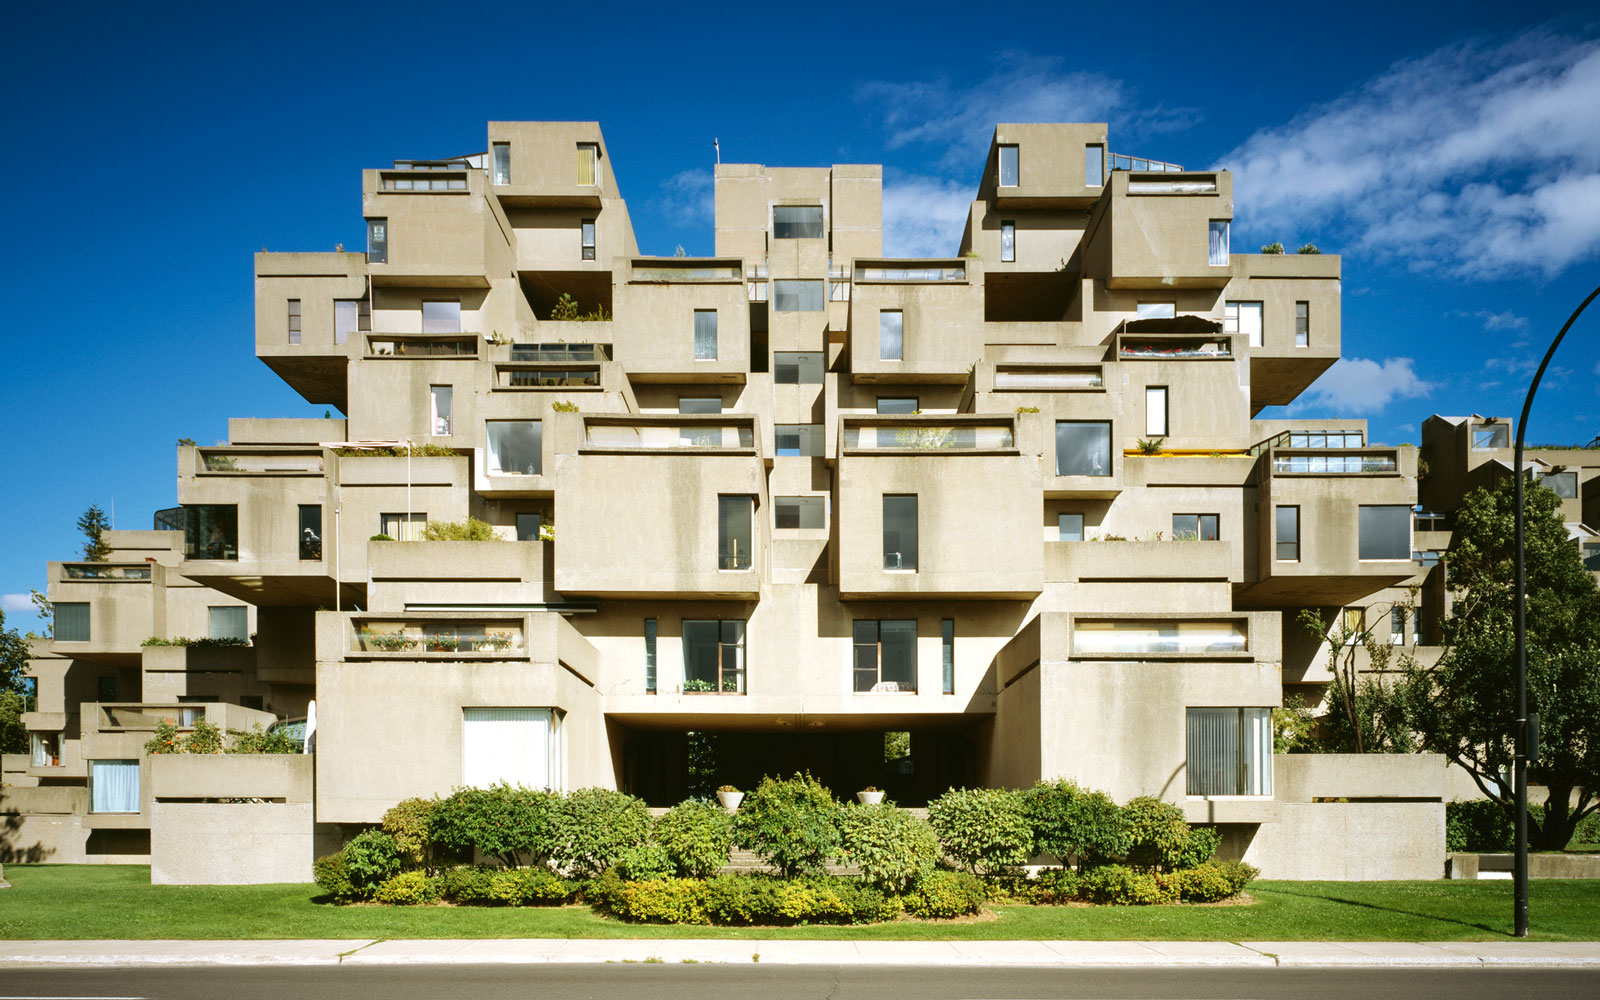 Get 'Square' at Habitat 67